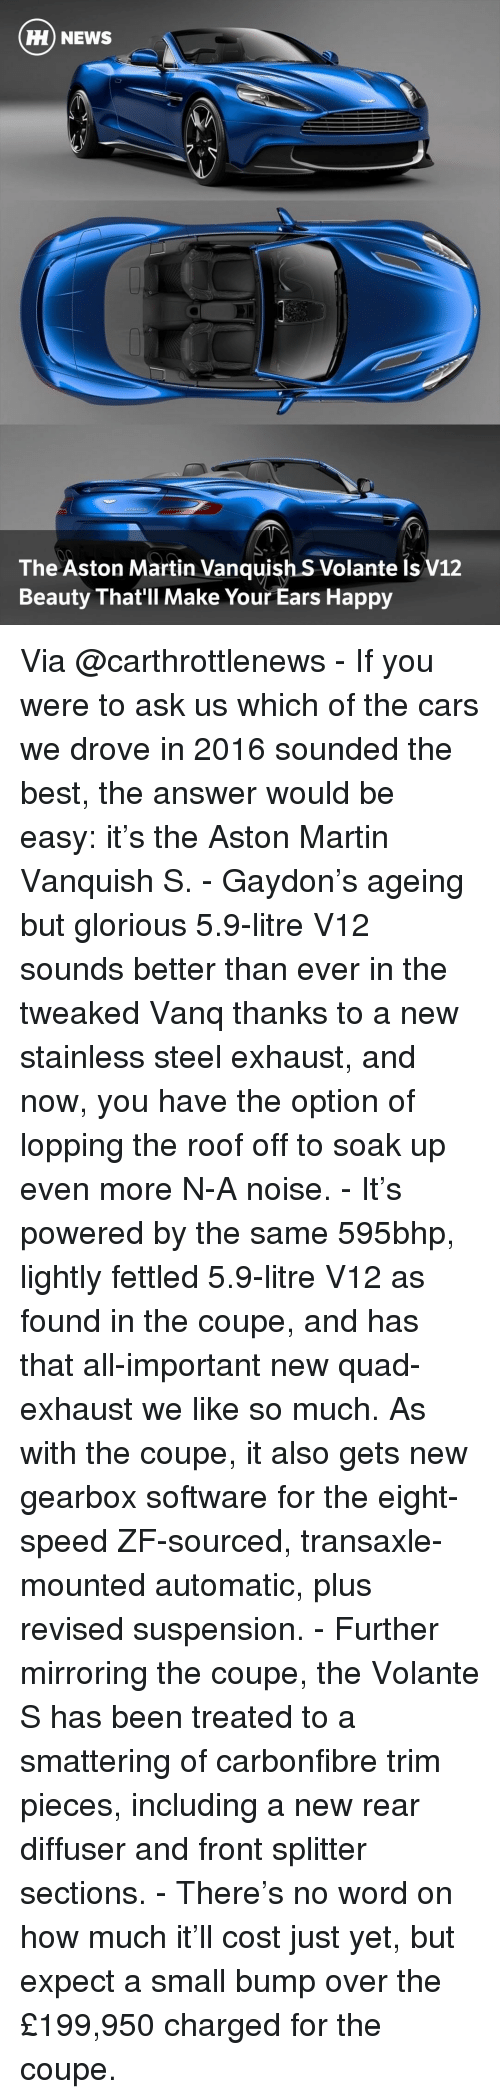 gearbox: HH NEWS  The Aston Martin Vanquish S Volante Is V12  Beauty That'll Make Your Ears Happy Via @carthrottlenews - If you were to ask us which of the cars we drove in 2016 sounded the best, the answer would be easy: it's the Aston Martin Vanquish S. - Gaydon's ageing but glorious 5.9-litre V12 sounds better than ever in the tweaked Vanq thanks to a new stainless steel exhaust, and now, you have the option of lopping the roof off to soak up even more N-A noise. - It's powered by the same 595bhp, lightly fettled 5.9-litre V12 as found in the coupe, and has that all-important new quad-exhaust we like so much. As with the coupe, it also gets new gearbox software for the eight-speed ZF-sourced, transaxle-mounted automatic, plus revised suspension. - Further mirroring the coupe, the Volante S has been treated to a smattering of carbonfibre trim pieces, including a new rear diffuser and front splitter sections. - There's no word on how much it'll cost just yet, but expect a small bump over the £199,950 charged for the coupe.